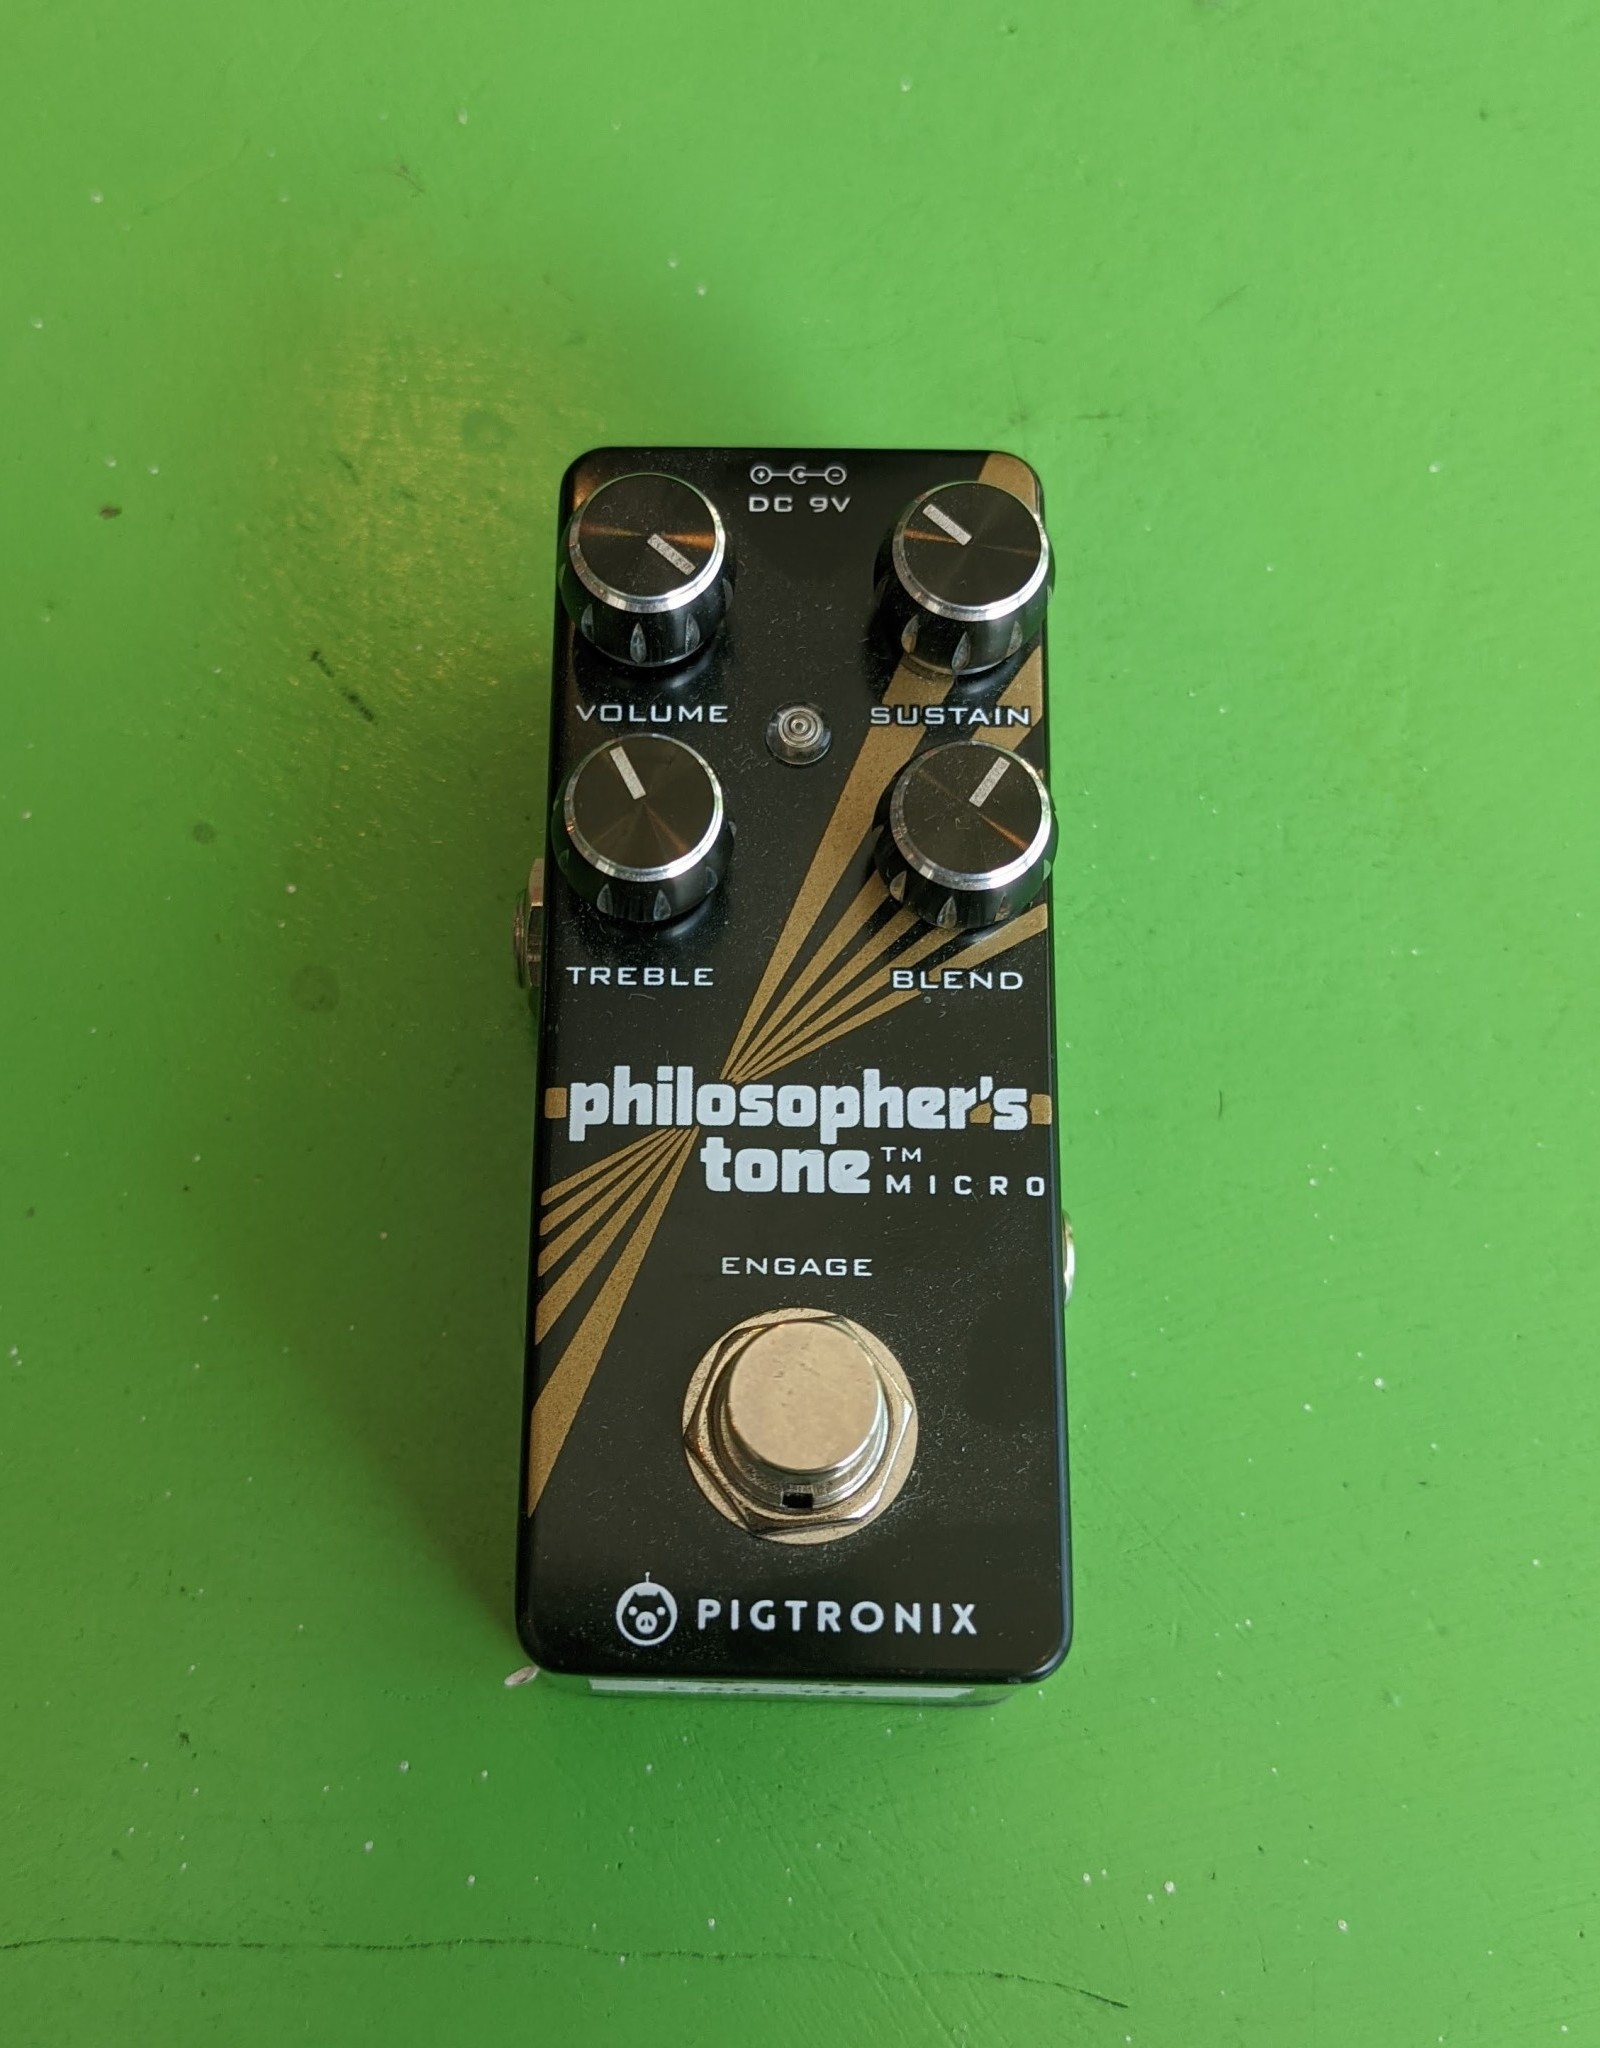 Pigtronix Pigtronix Philosopher's Tone Micro, Used